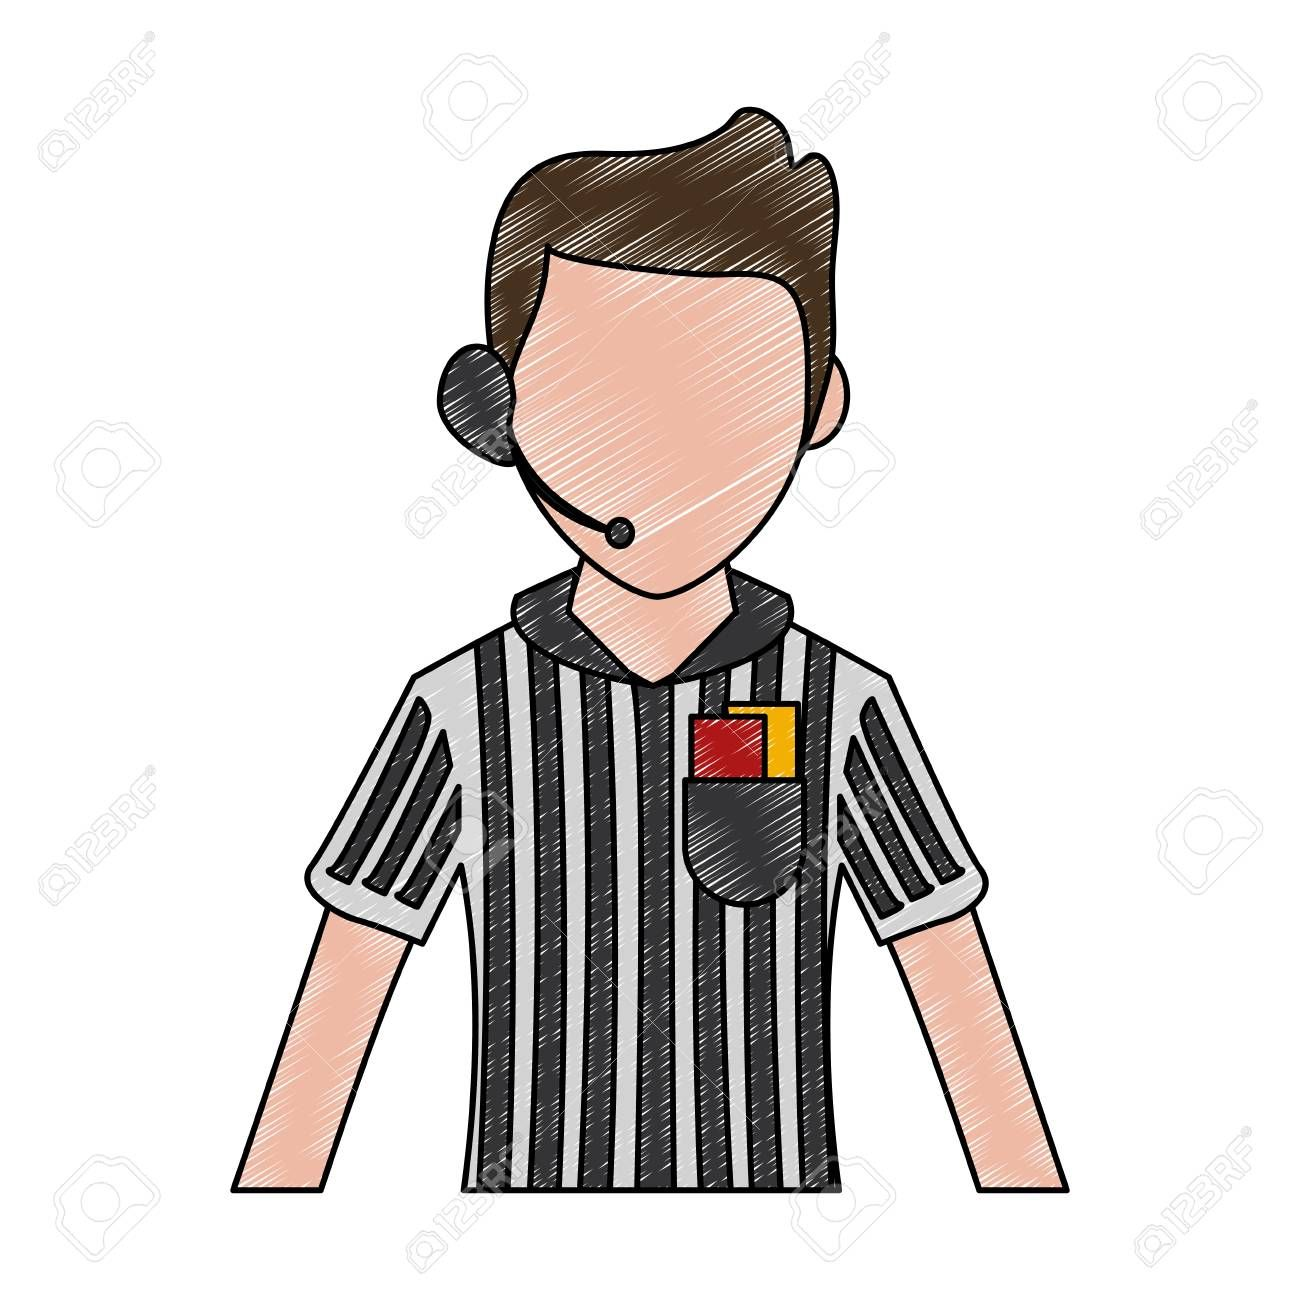 Soccer Referee Cartoon Vector Illustration Graphic Design Ad Cartoon Referee Soccer In 2020 Social Media Design Graphics Cartoons Vector Social Media Graphics